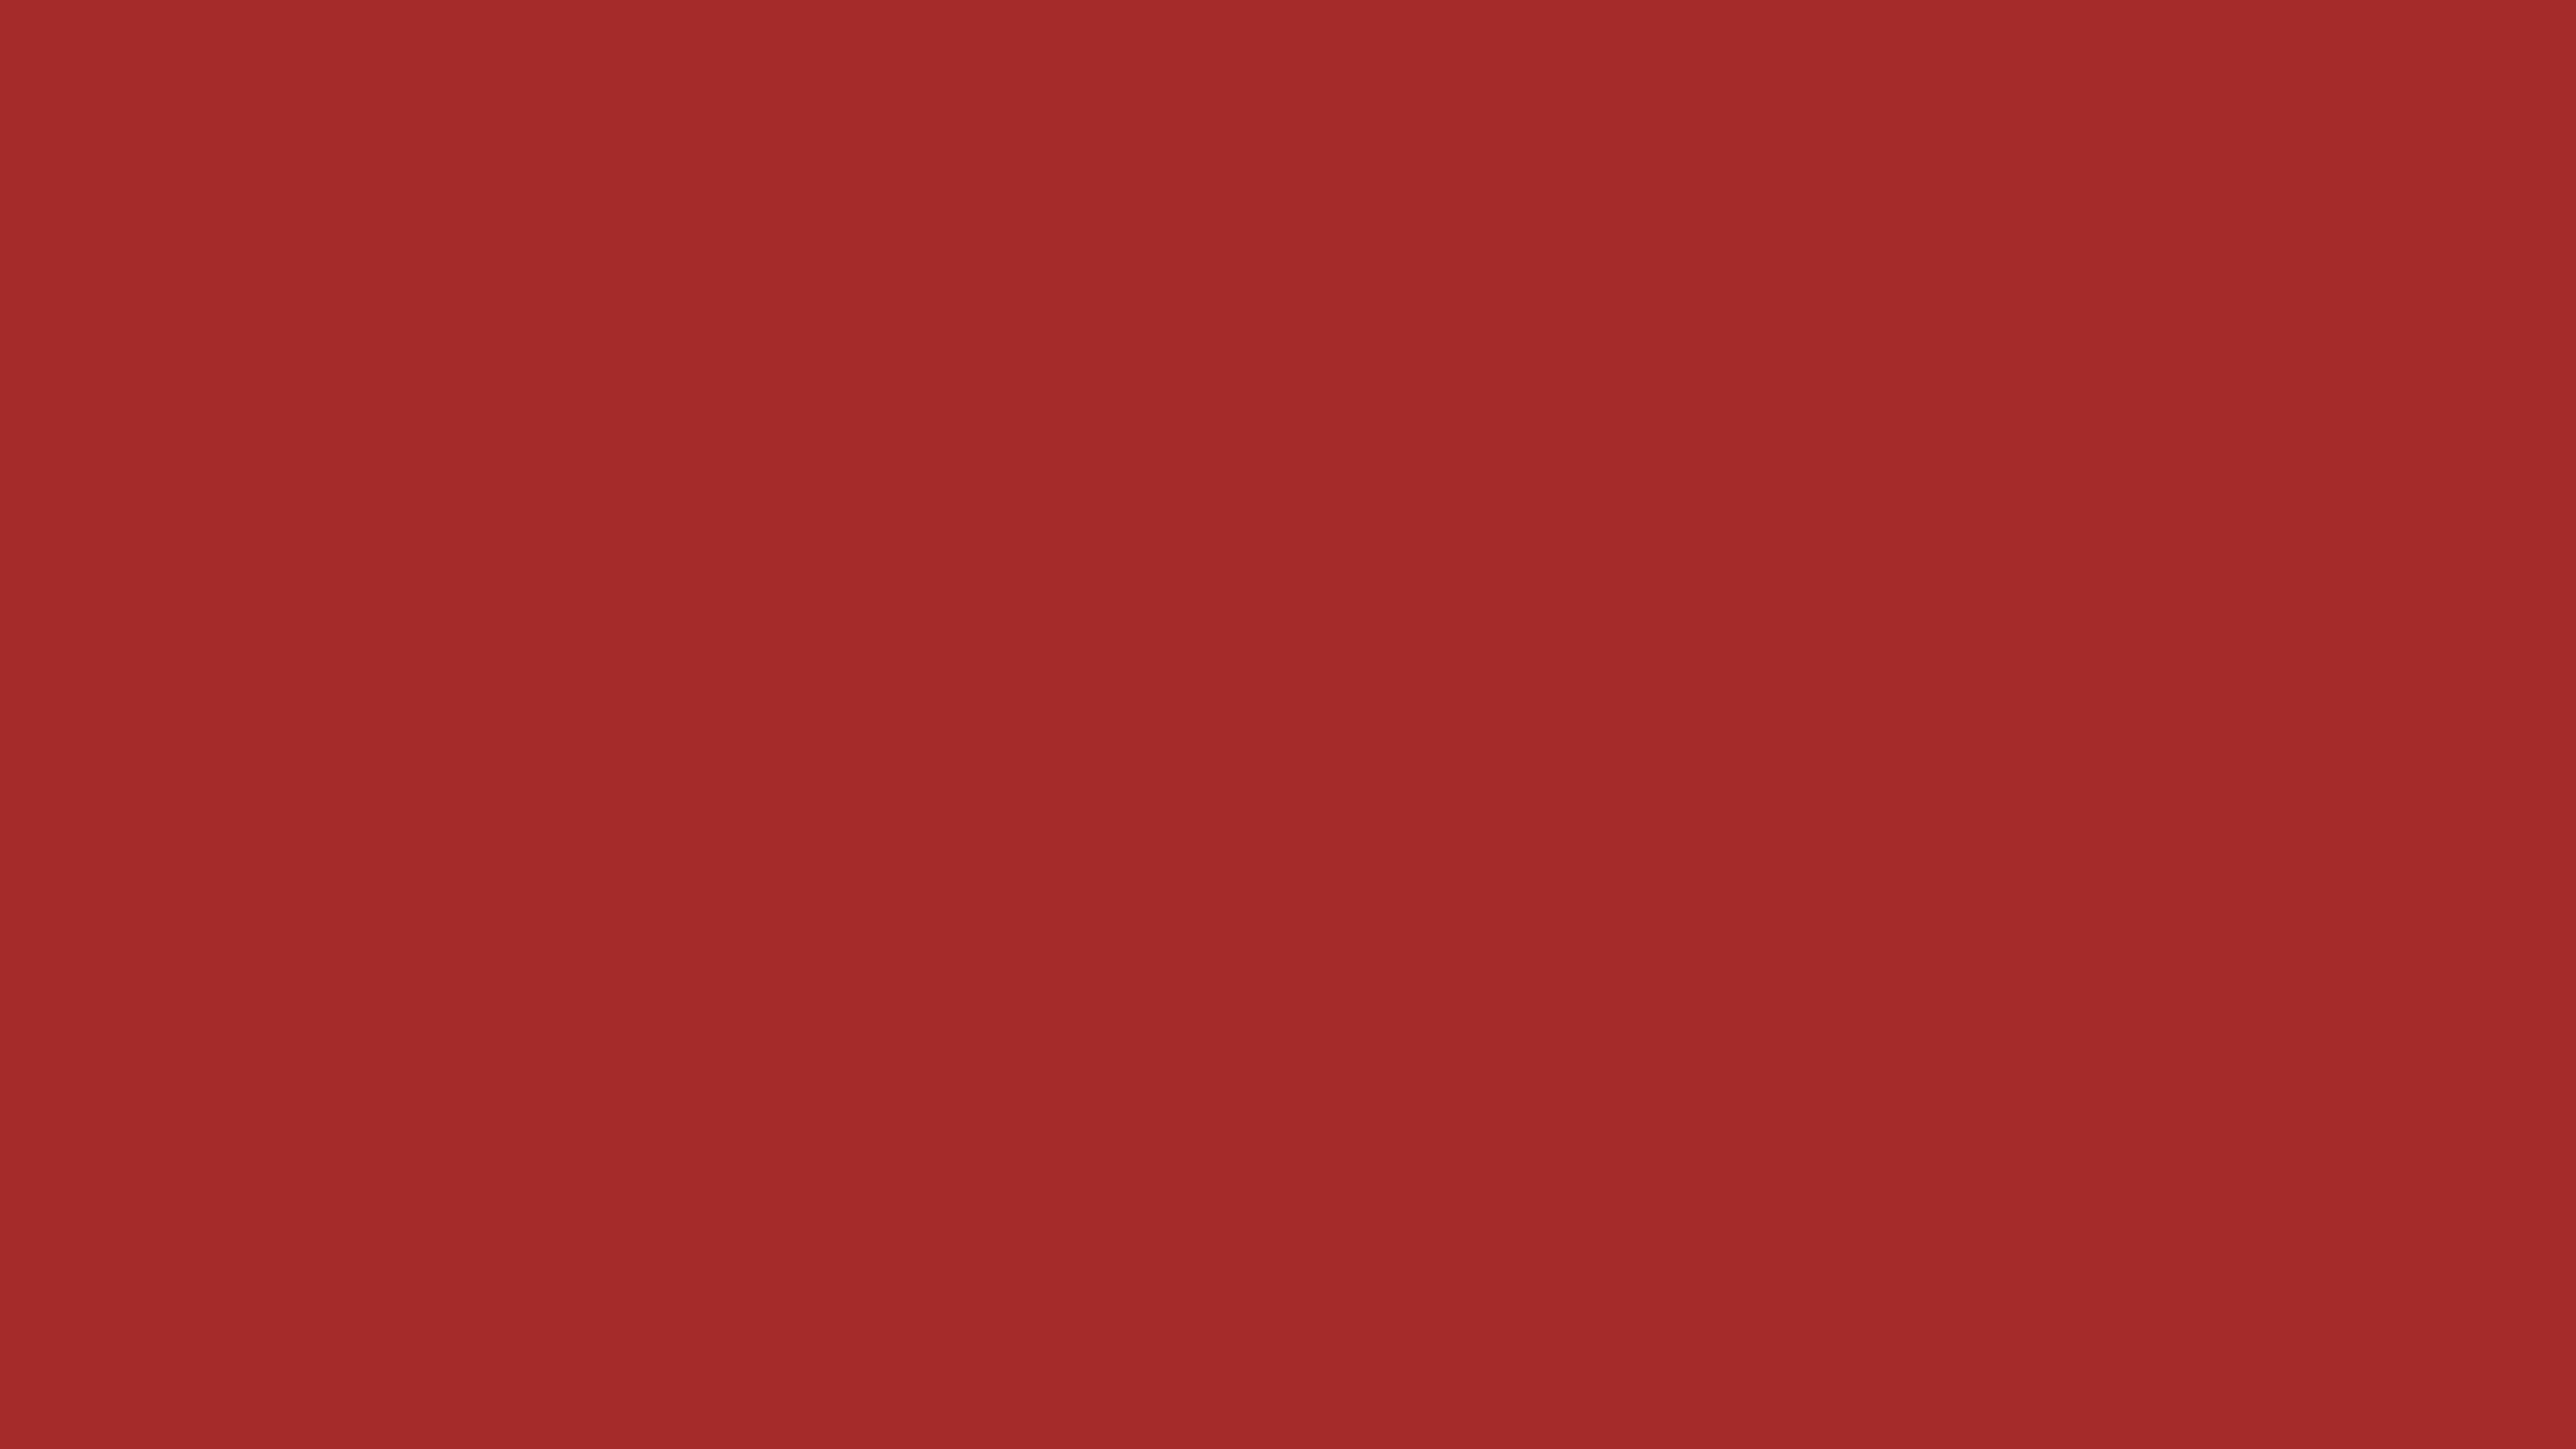 3840x2160 Red-brown Solid Color Background